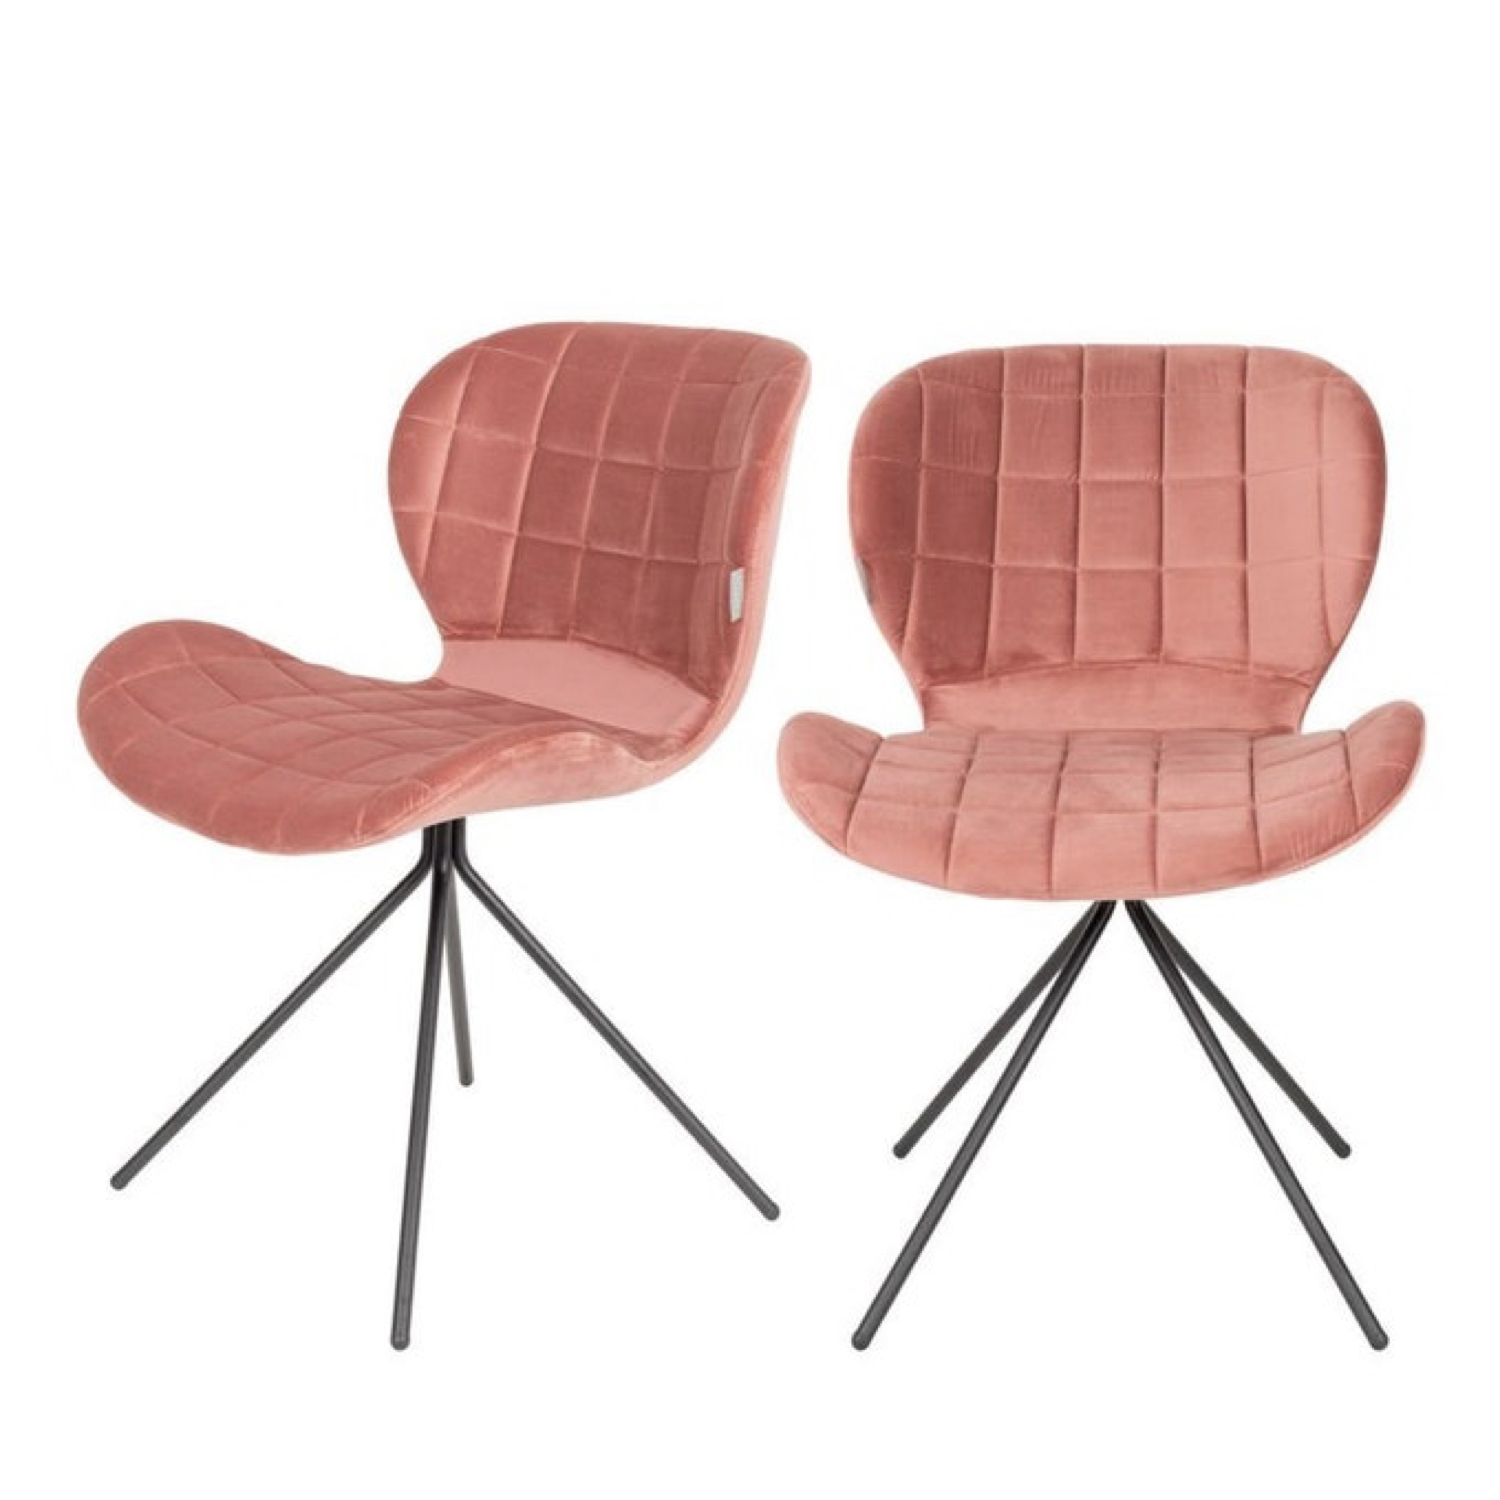 ou trouver chaise velours rose 6